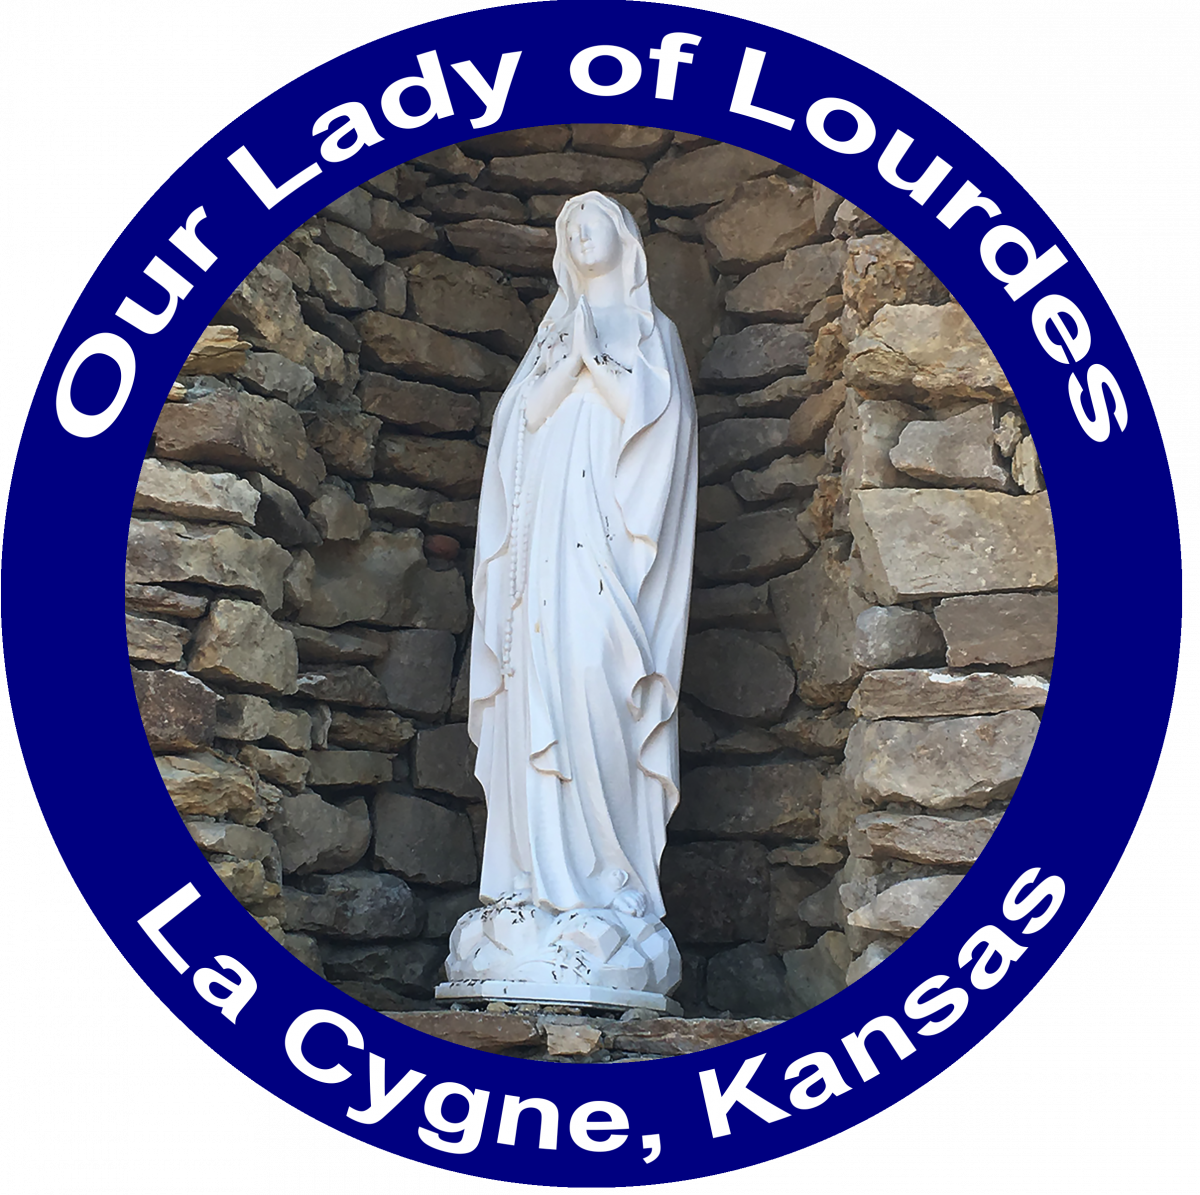 Our Lady of Lourdes Catholic Church in La Cygne Kansas